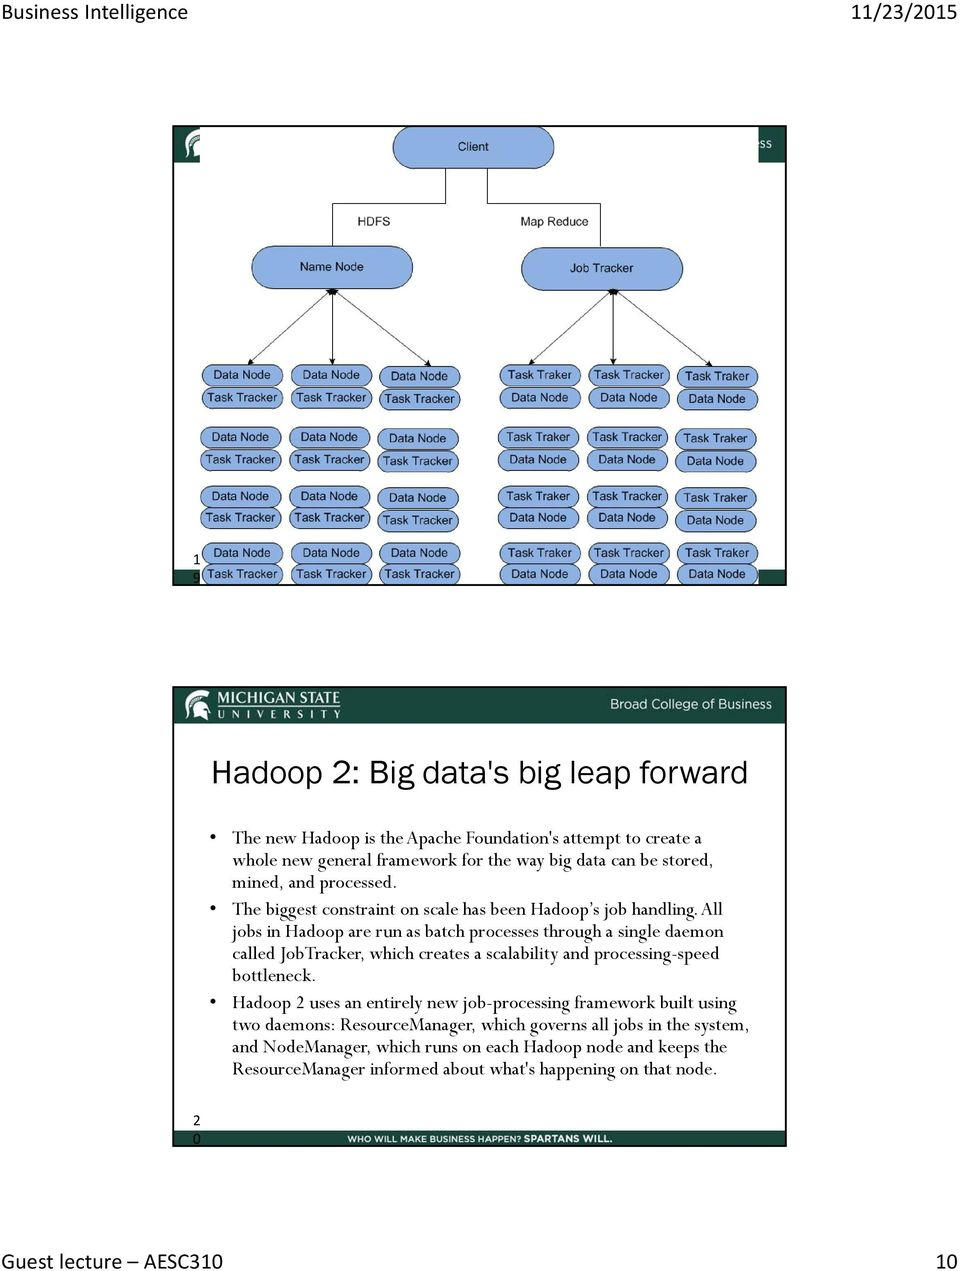 All jobs in Hadoop are run as batch processes through a single daemon called JobTracker, which creates a scalability and processing-speed bottleneck.